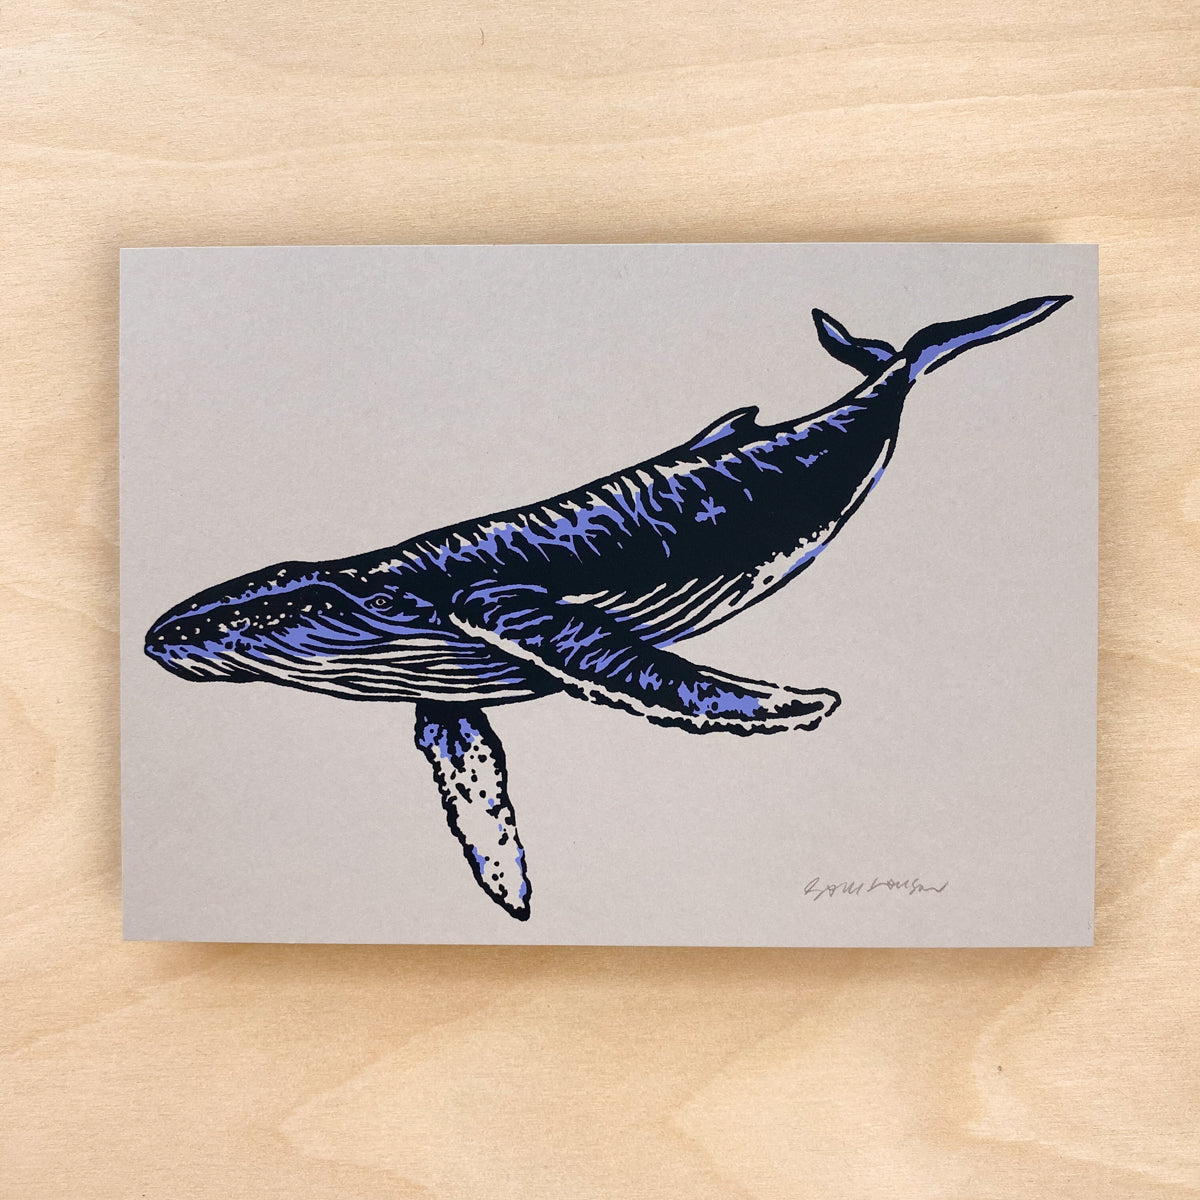 Maui Humpback - Signed 7x5in Print #210